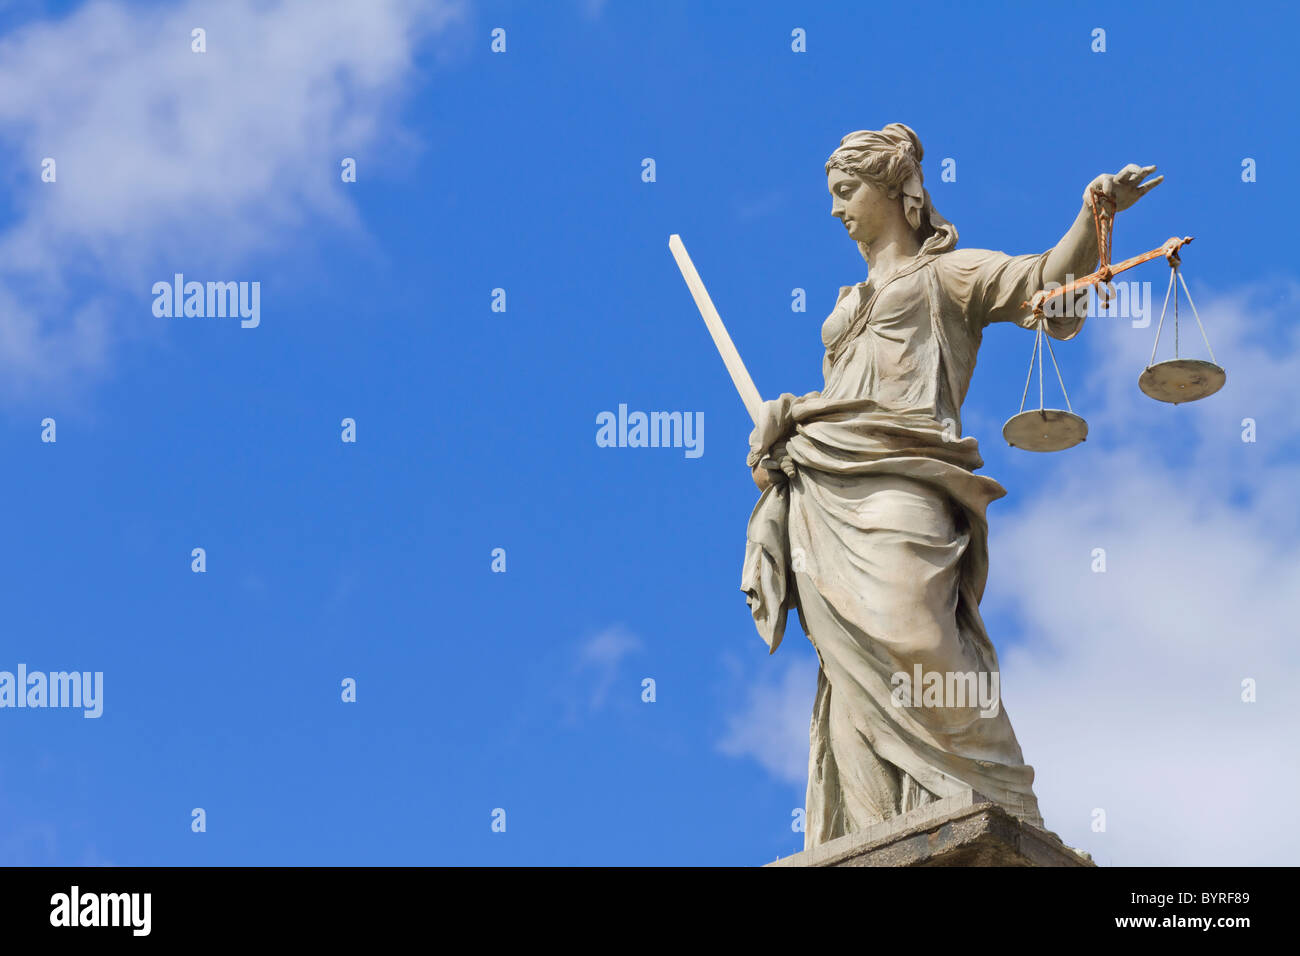 Statue of Lady Justice in Dublin - Stock Image